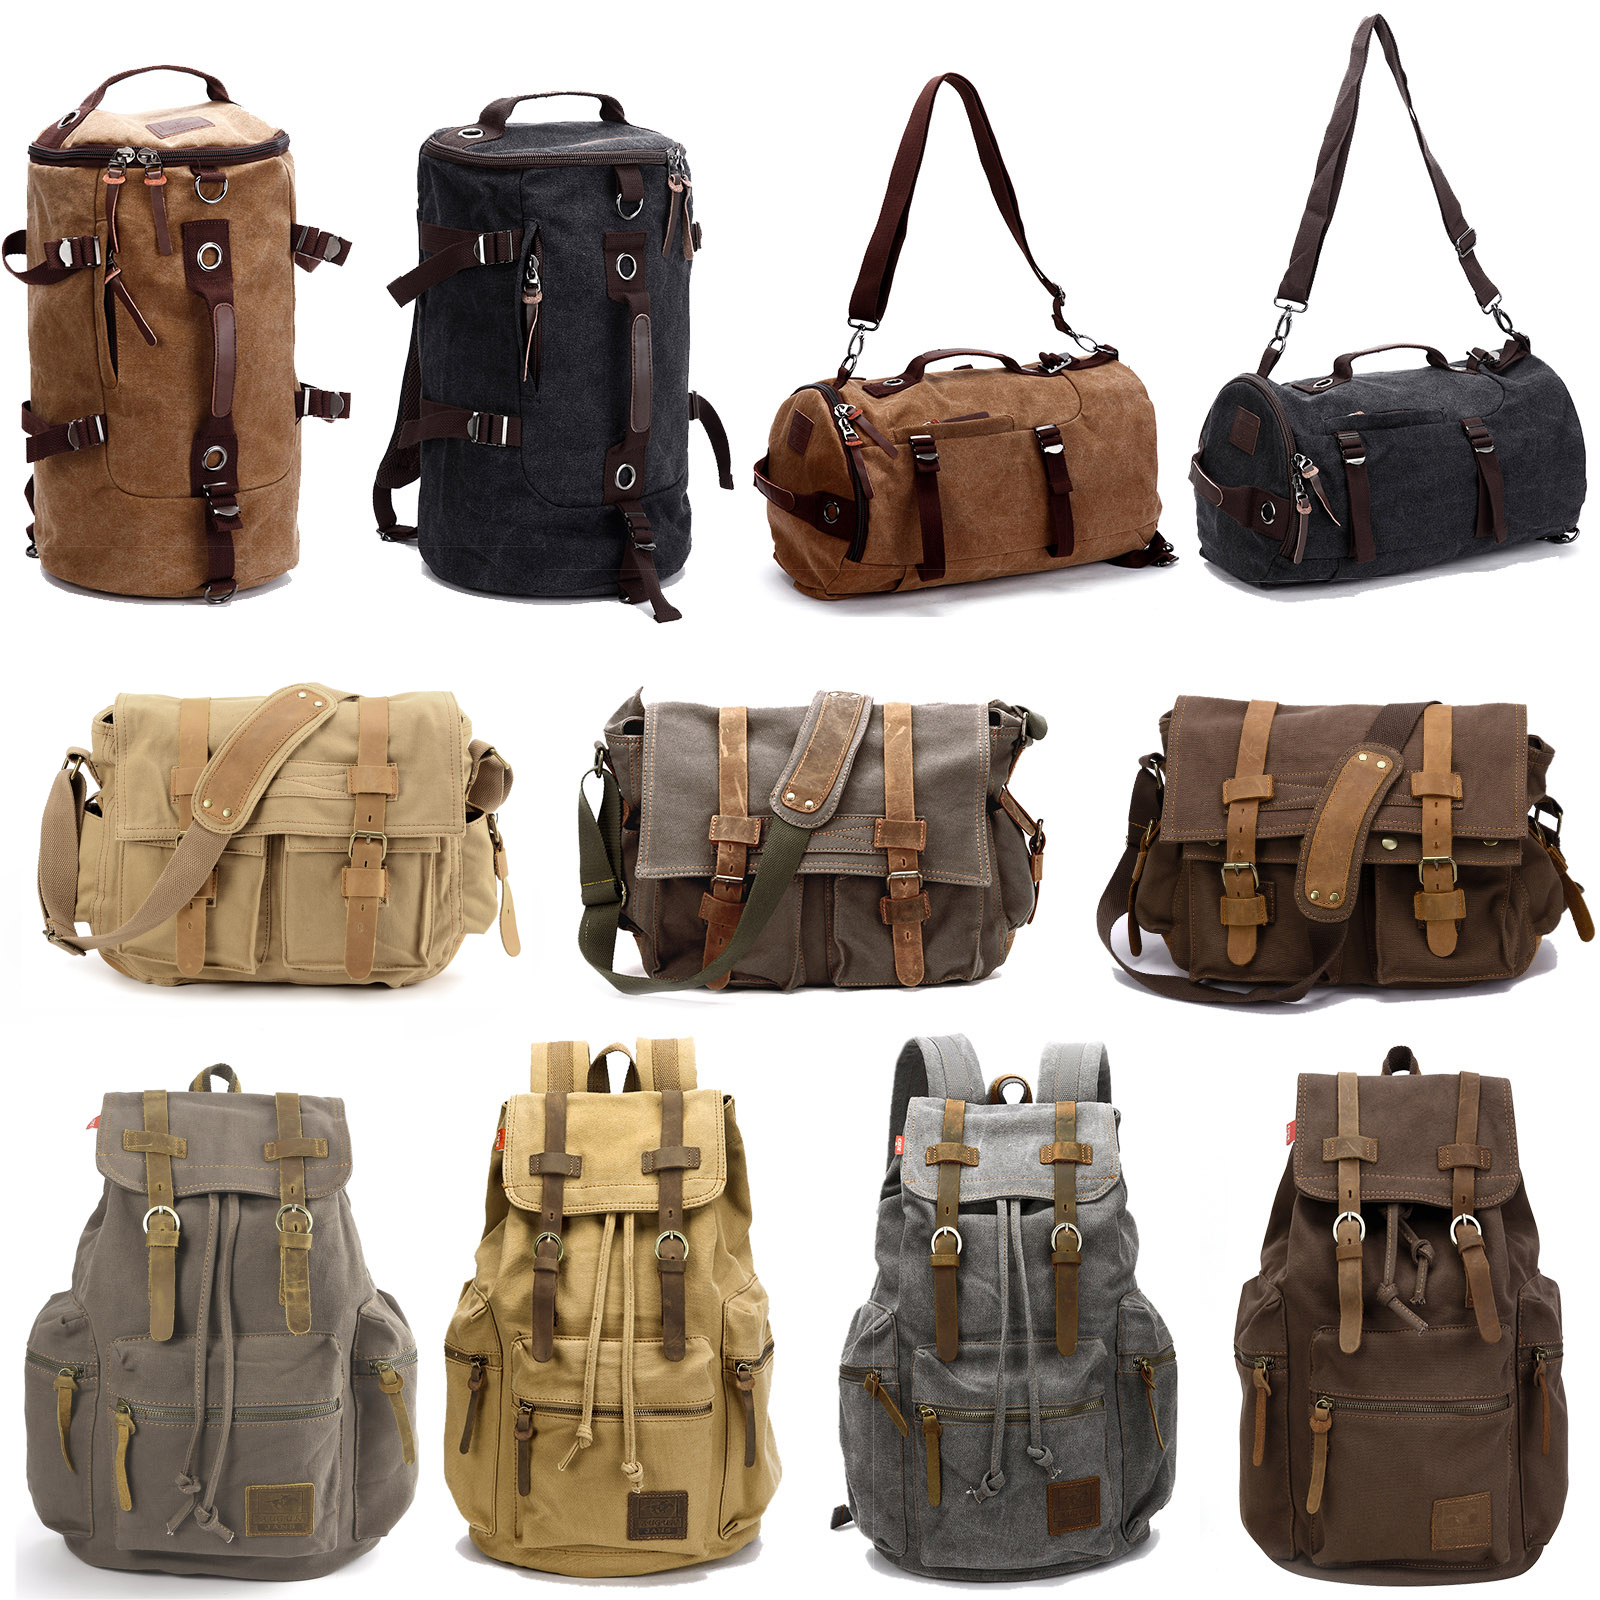 Details about Mens Canvas Backpack Rucksack School Travel Camping Bag Duffle  Gym Bag 10-32L bfb3152ff8b